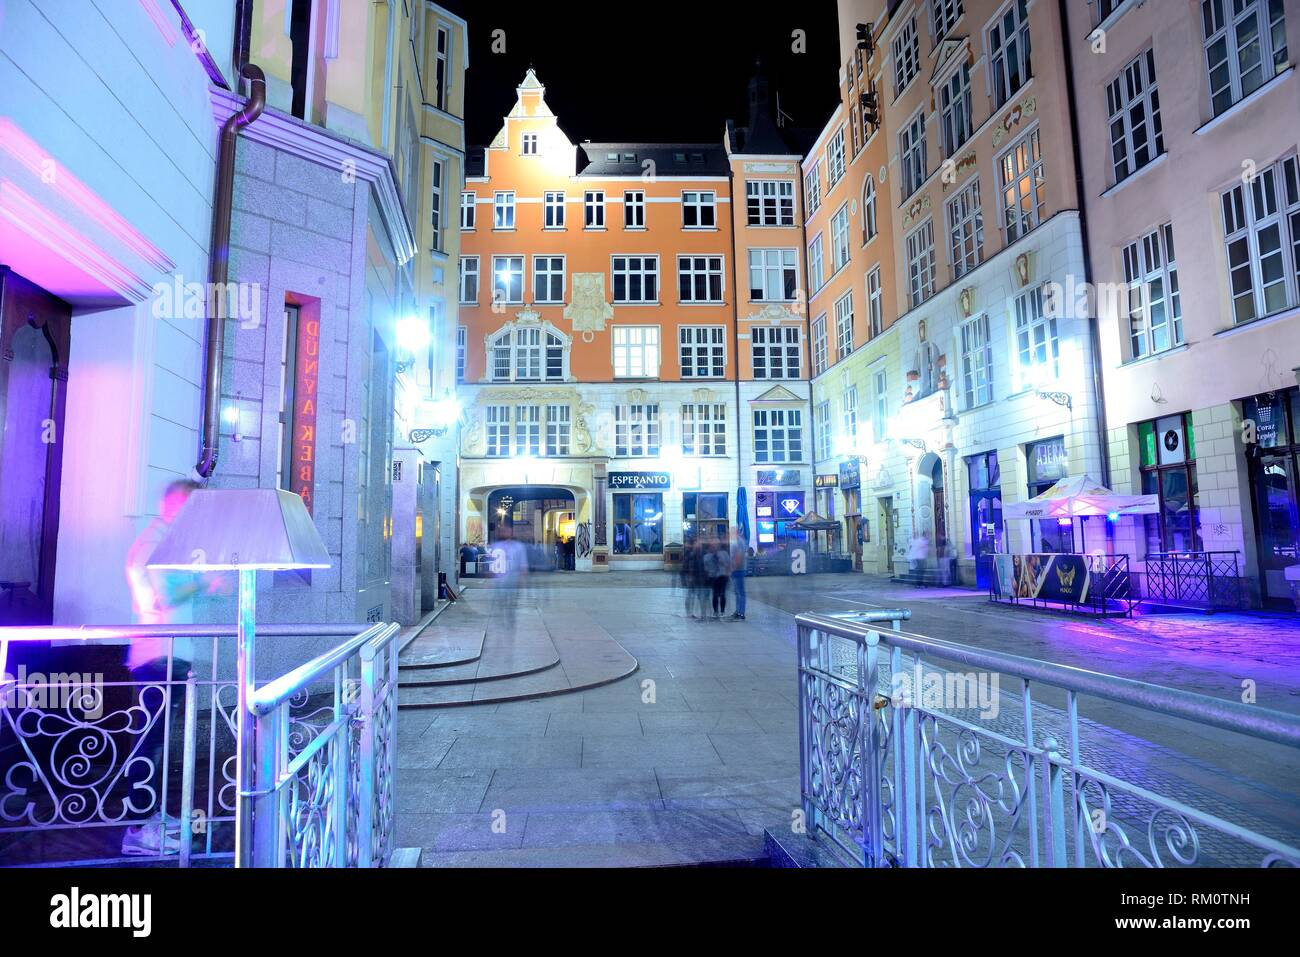 Small square at night in Wroclaw or Breslau, Poland Stock Photo